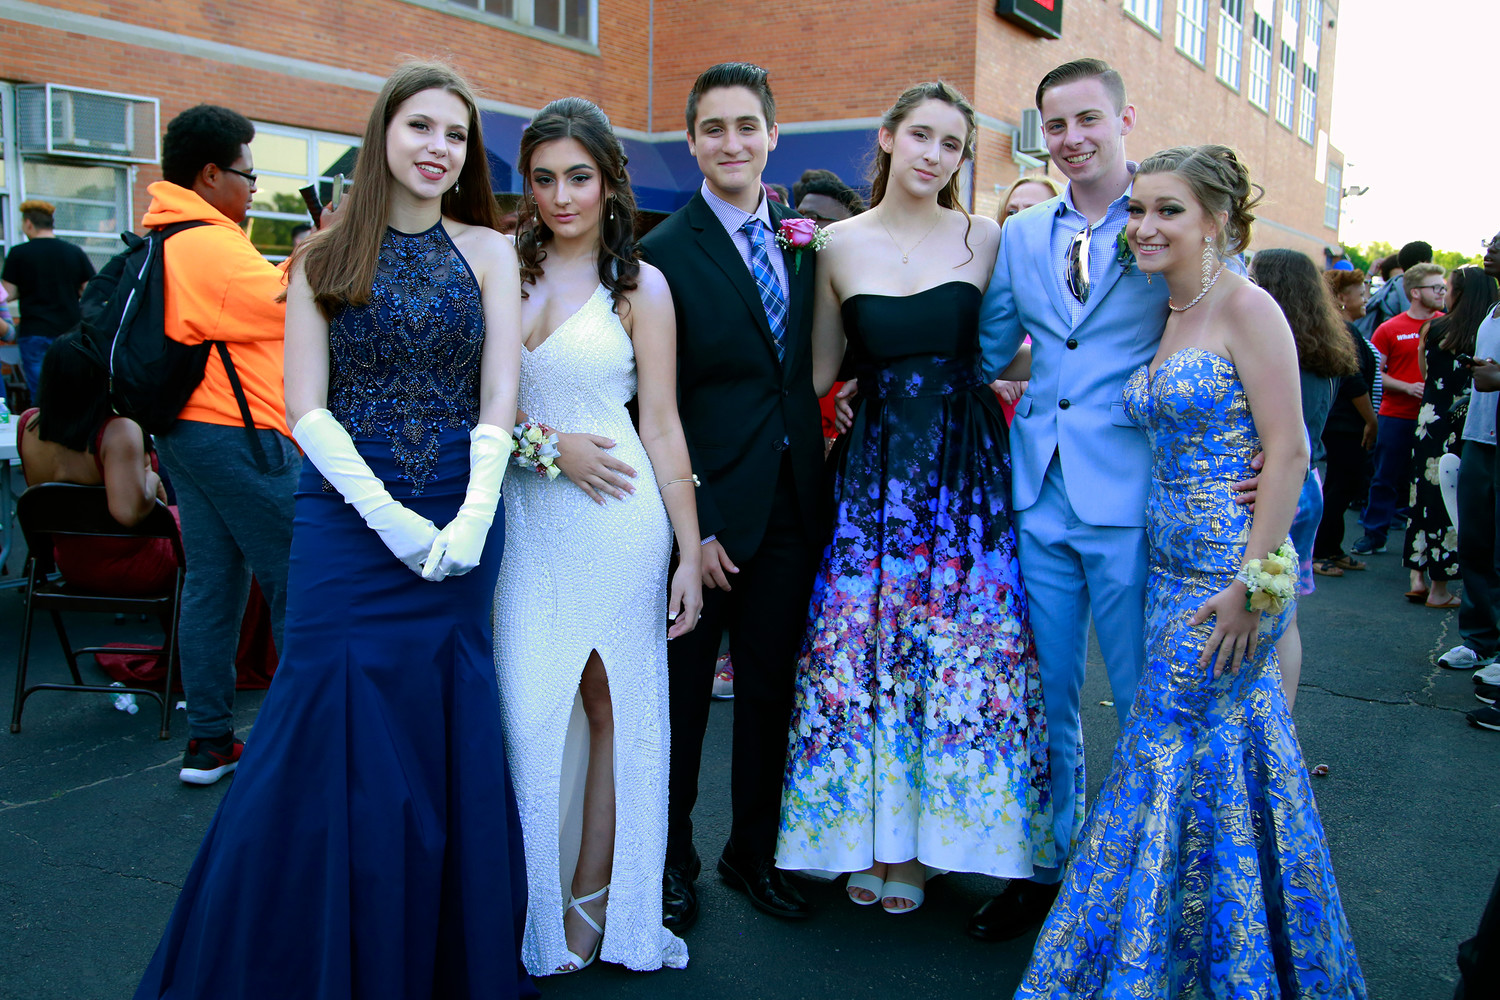 Our Lady of Lourdes Youth Ministry members Elizabeth Ray, far left, Rosa Romano, Christian Rodriguez, Estela Laureano, Shane McGovern and Olivia St. John.